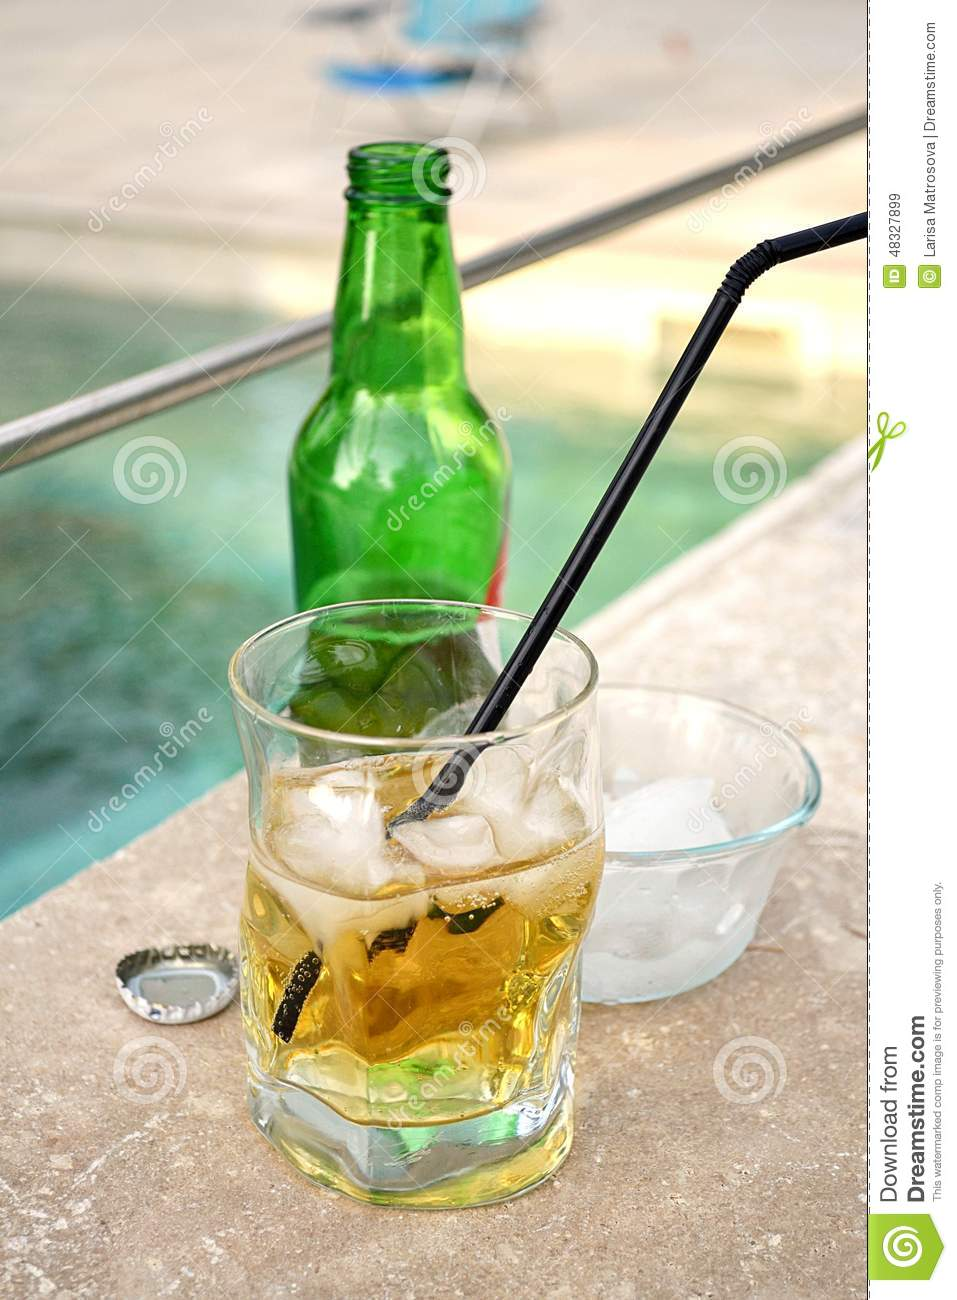 Summer Drink In A Glass Near The Swimming Pool Stock Photo Image 48327899